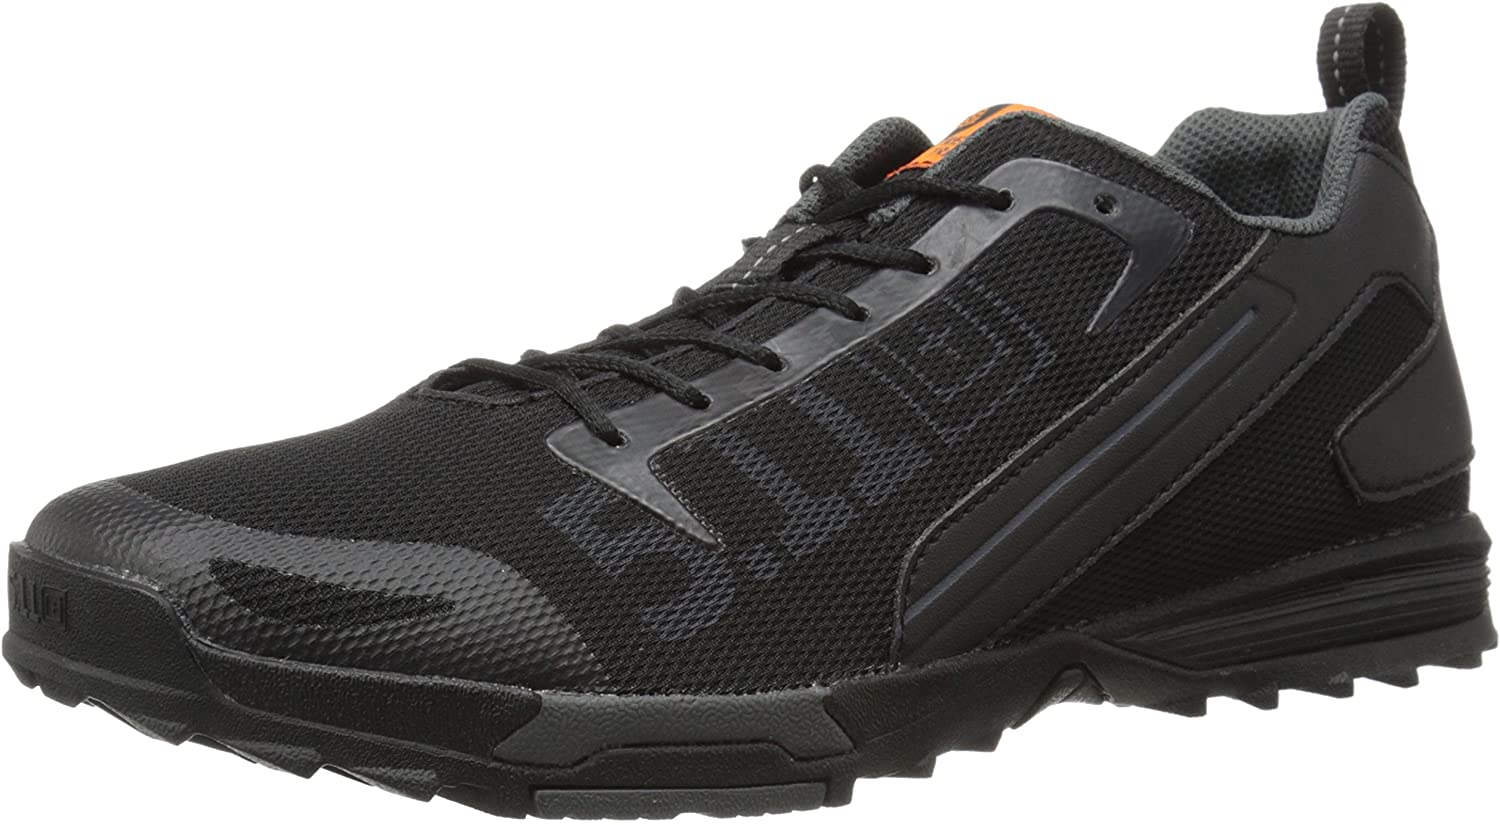 5.11 Men's Recon Trainer-M Minimalist Shoes are affordable yet high-quality.